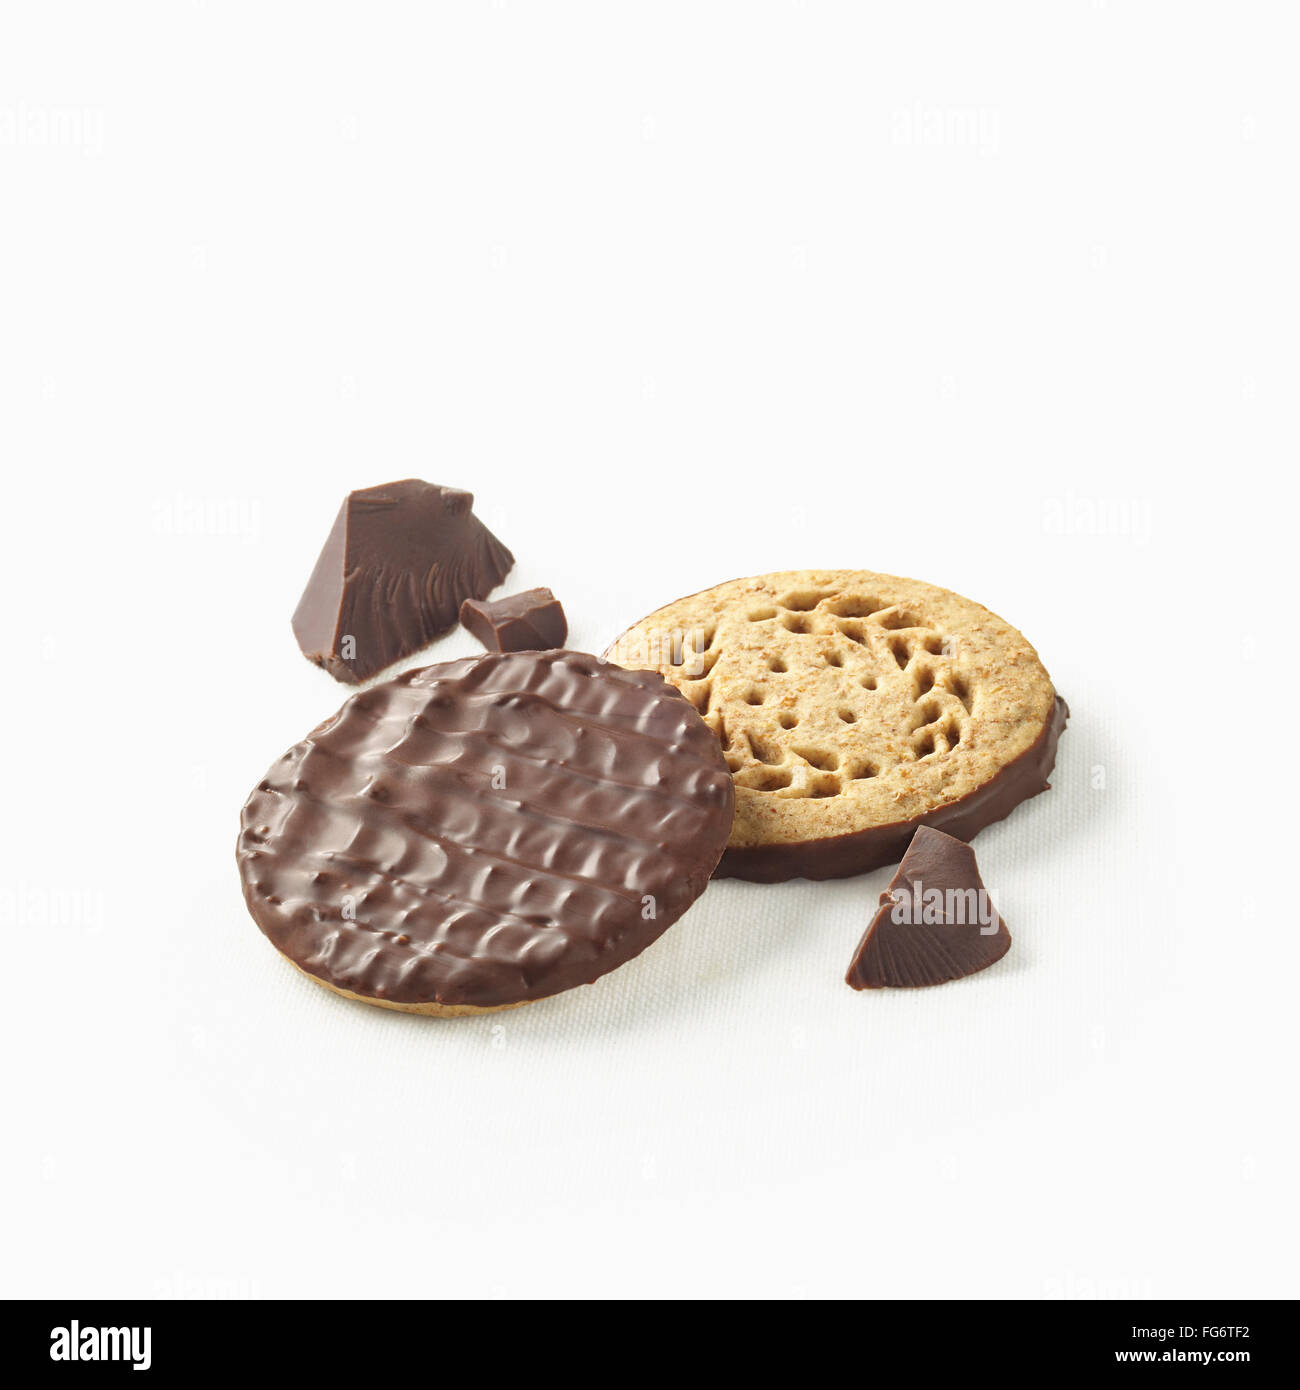 Chocolate covered cookies with pieces of chocolate on a white background; Toronto, Ontario, Canada Stock Photo